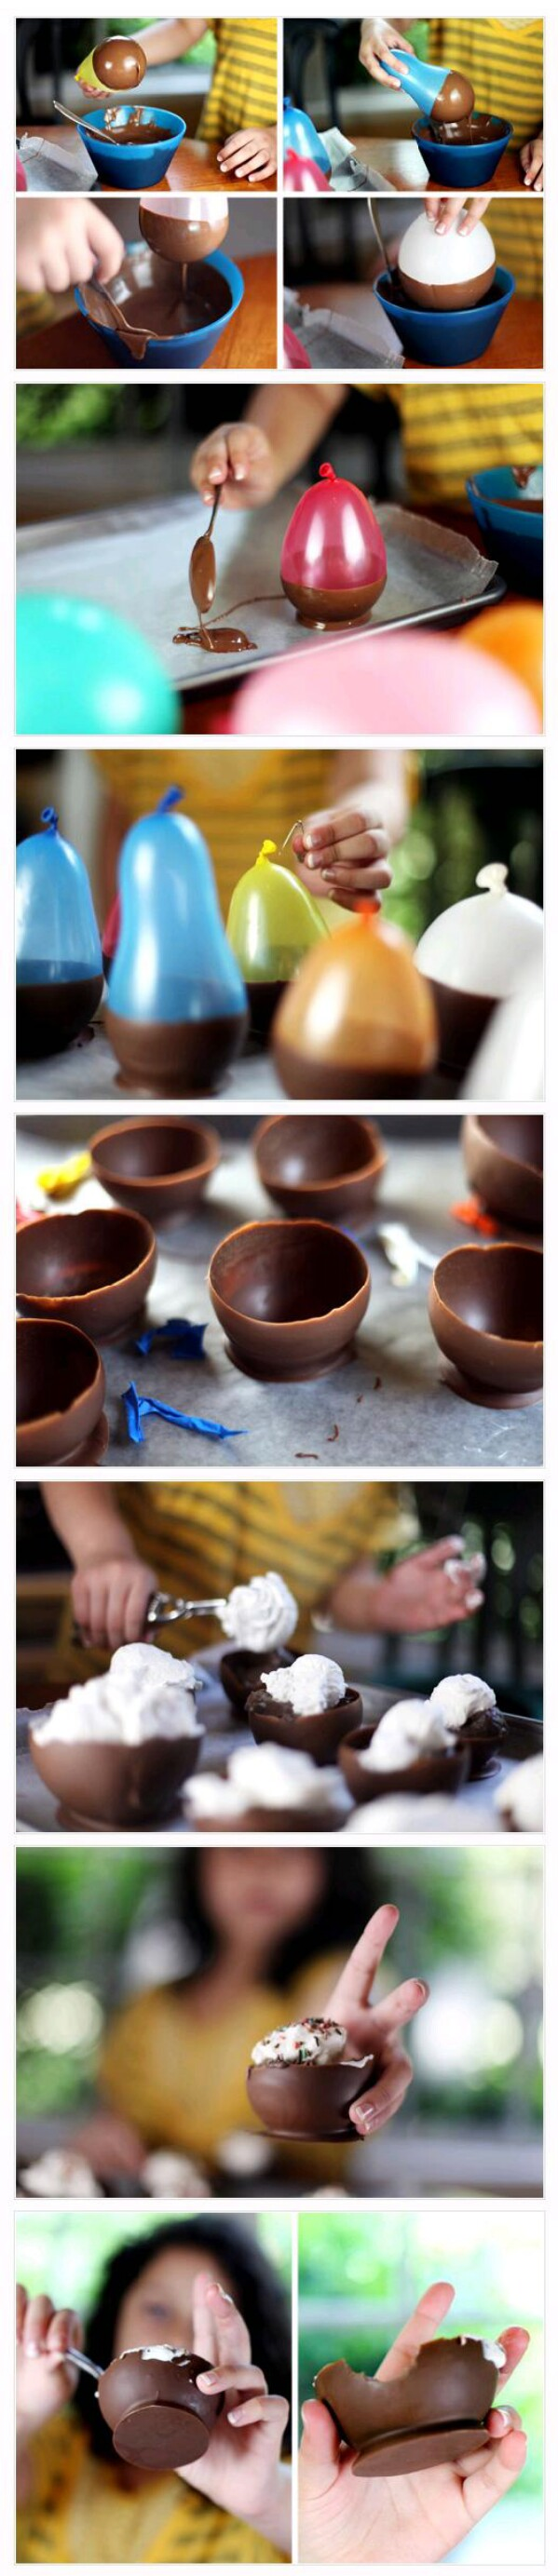 How to Make a Chocalate Bowl